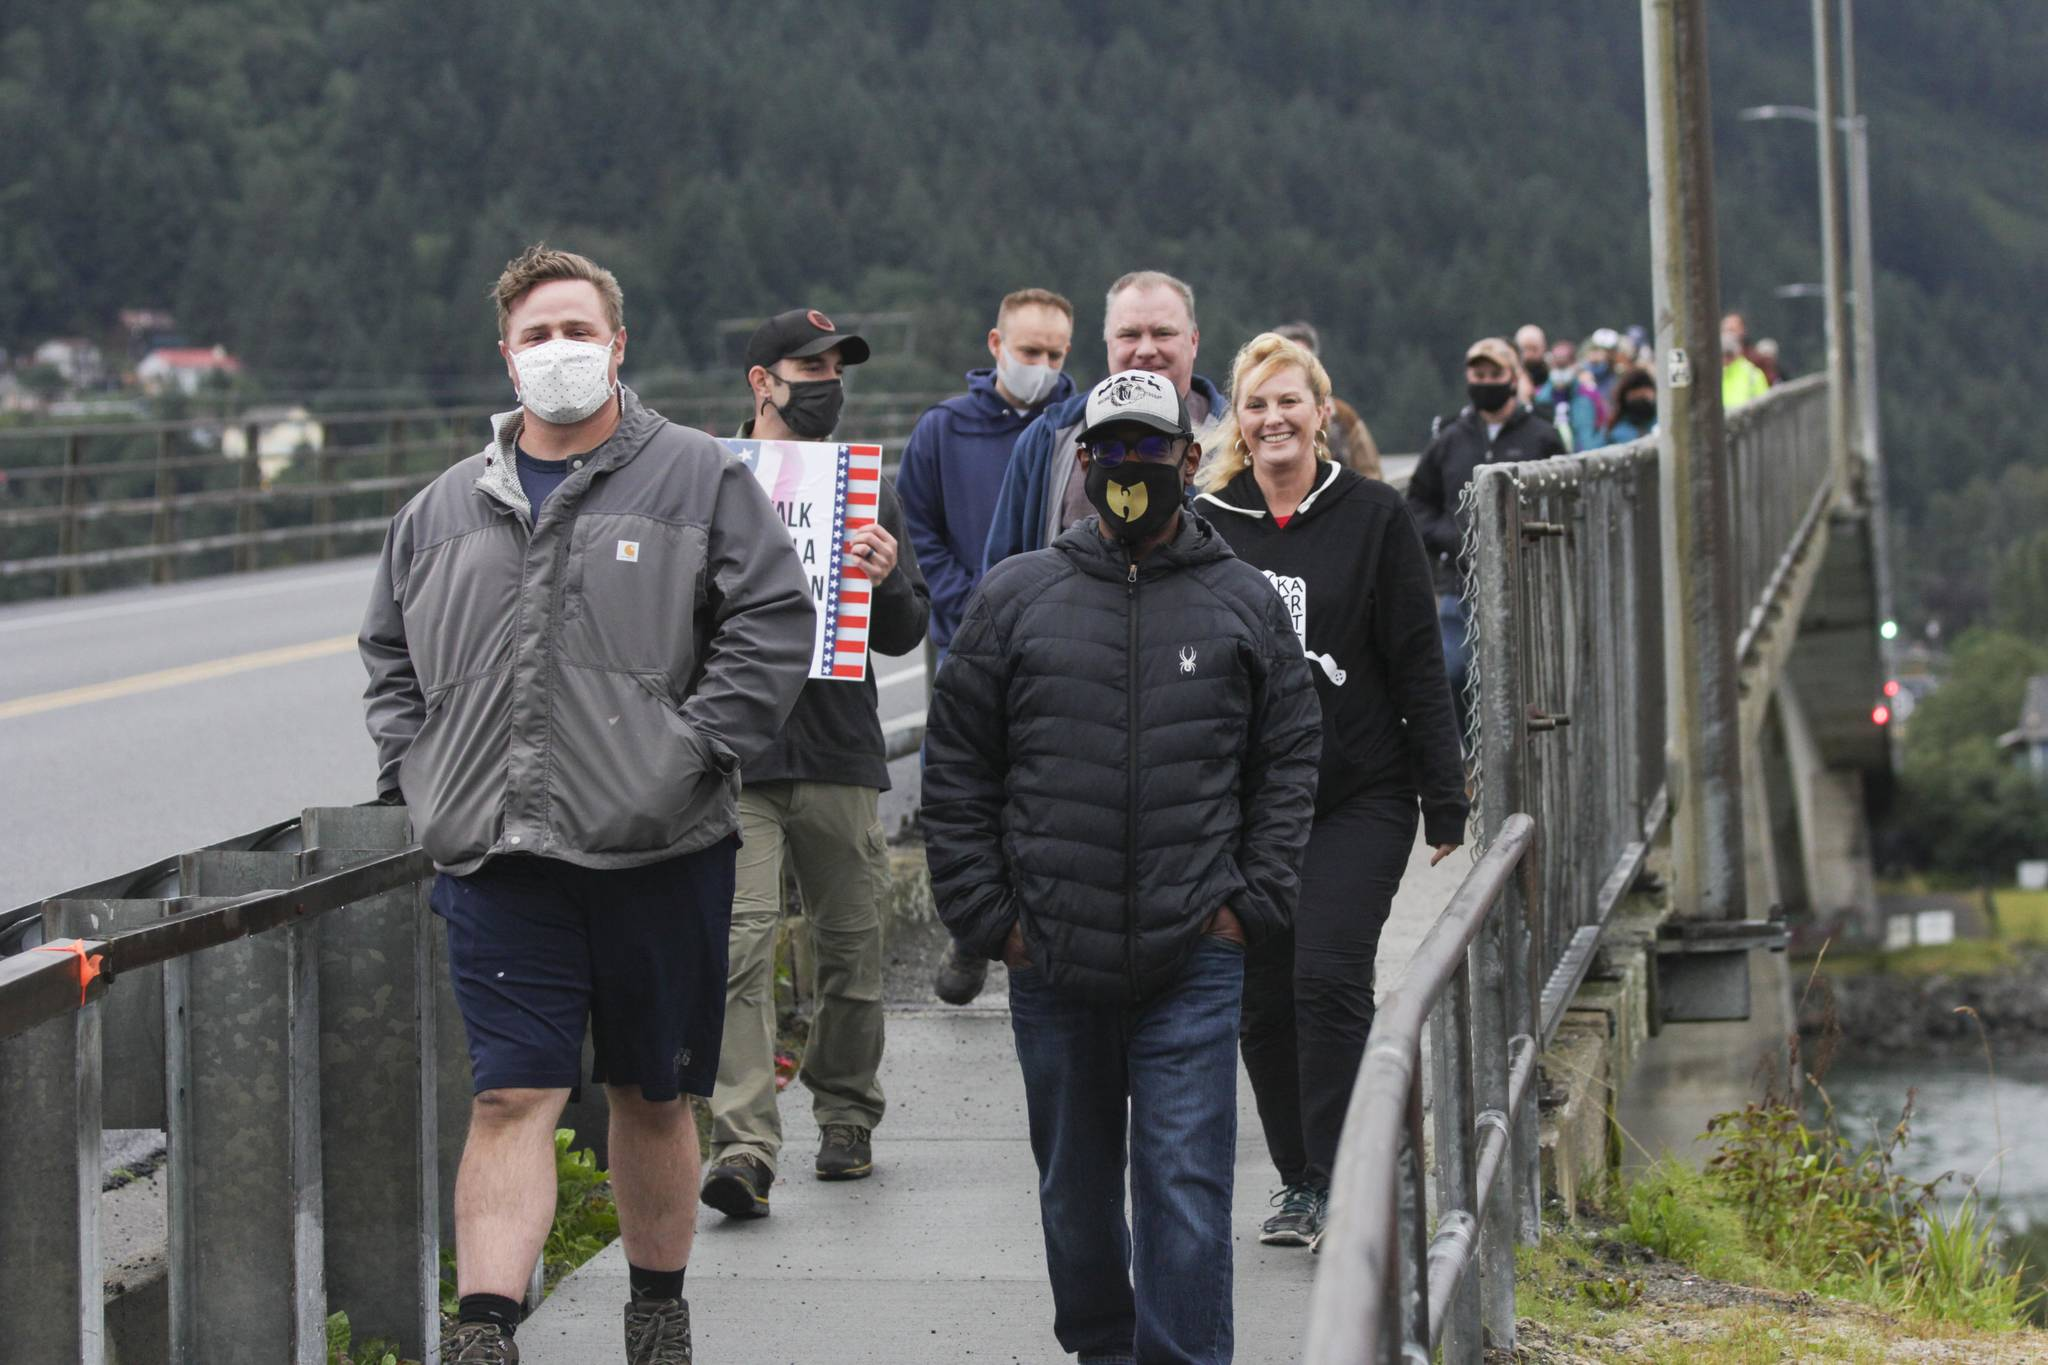 Juneau residents and veterans gathered on Tuesday, Aug. 24, 2021 for Together with Juneau Veterans' first Walk with a Vet event across the Douglas Bridge. (Michael S. Lockett / Juneau Empire)